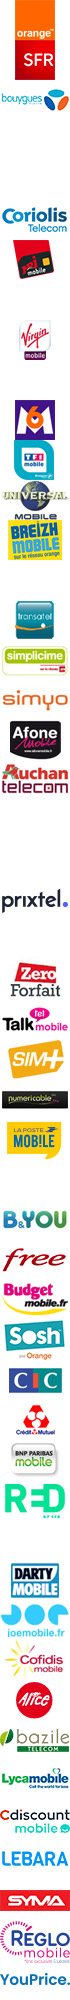 forfait SFR Carr� 2 Go (sans mobile) illimit� Sans engagement